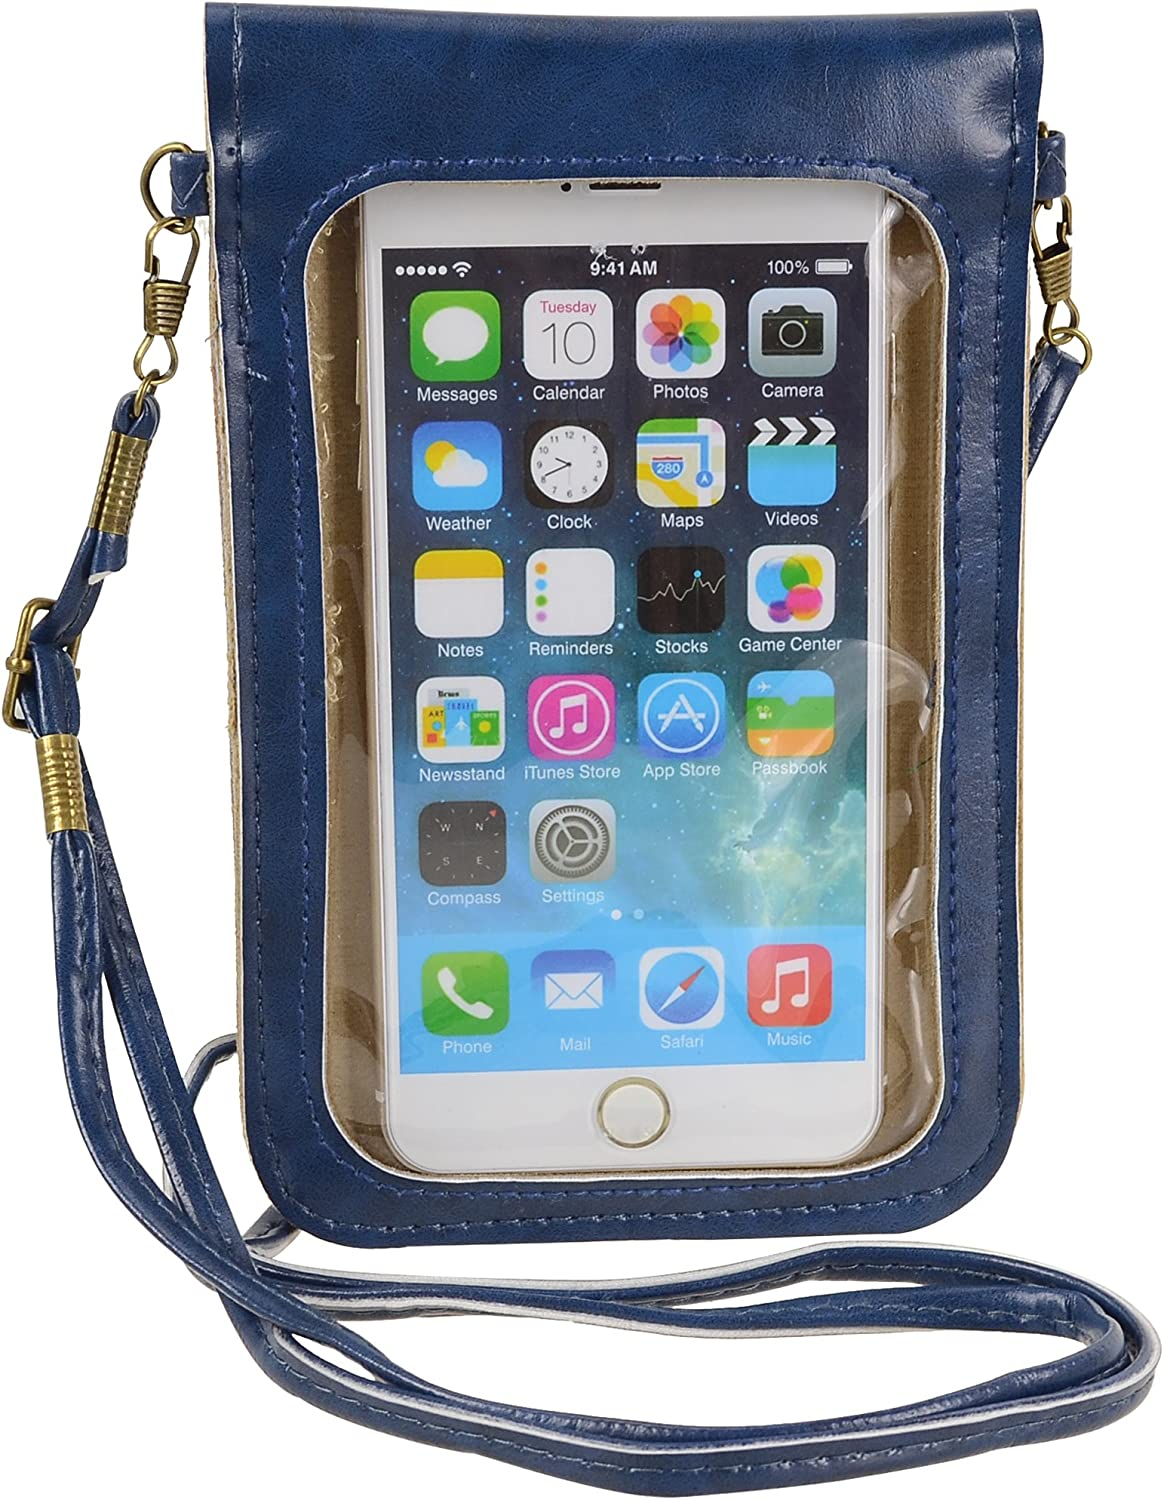 Little Cellphone Purse with Touch Screen Clear Window Travel Crossbody Bag for iPhone 11 Pro Max, XS Max, Galaxy S10 Plus S9+, A10S A10, Pixel 3 XL, 2XL Moto G8 Play Z4, Z3, OnePlus 6T BLU G90 (Blue)